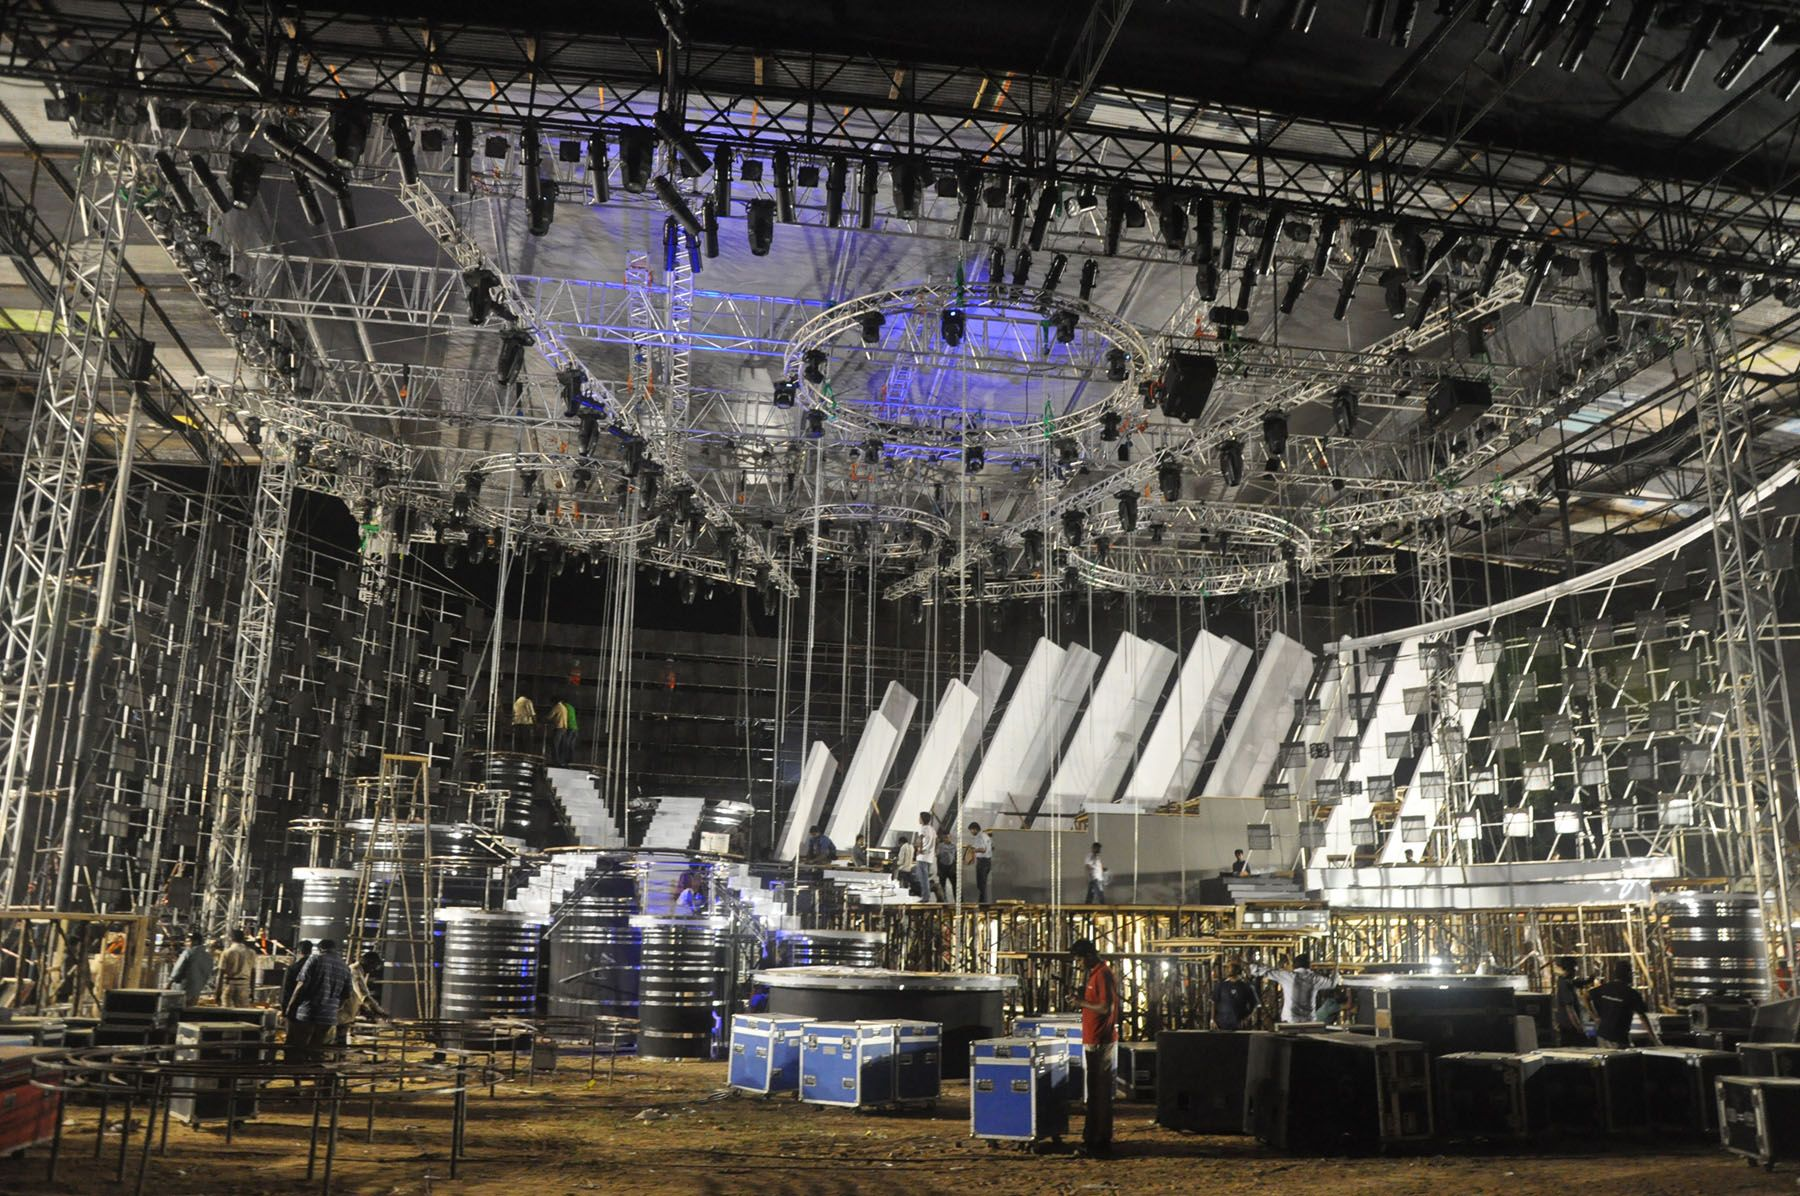 Stage Lighting Rig Google Search Tech Sound